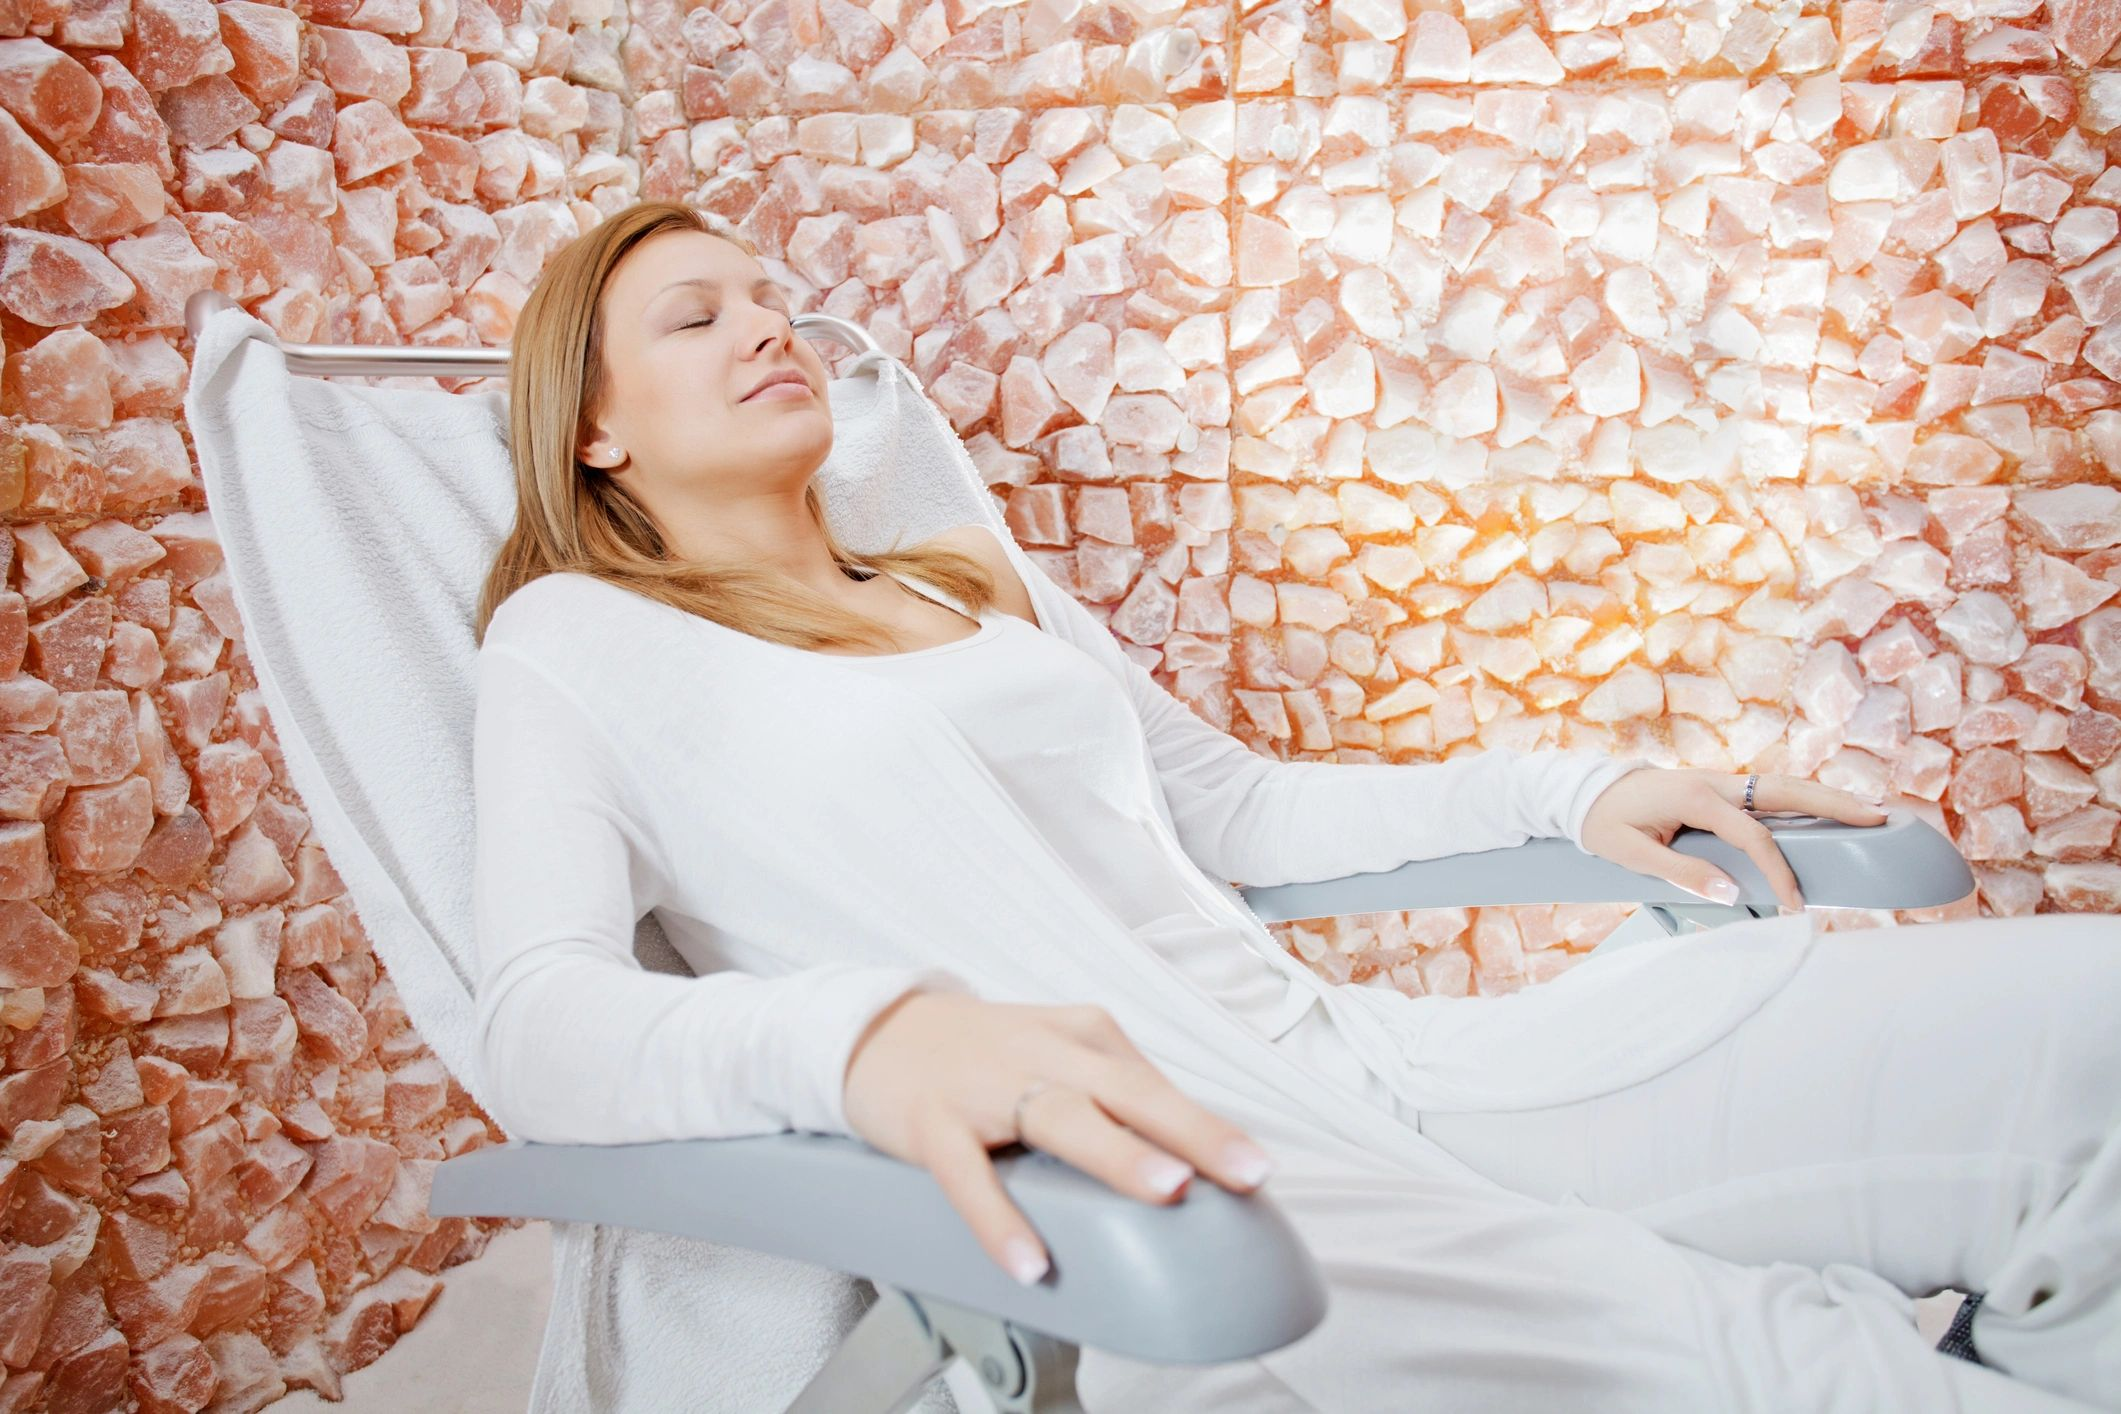 salt therapy, salt room, salt cave, halotherapy, dry salt therapy, coastal salt, asthma, allergies